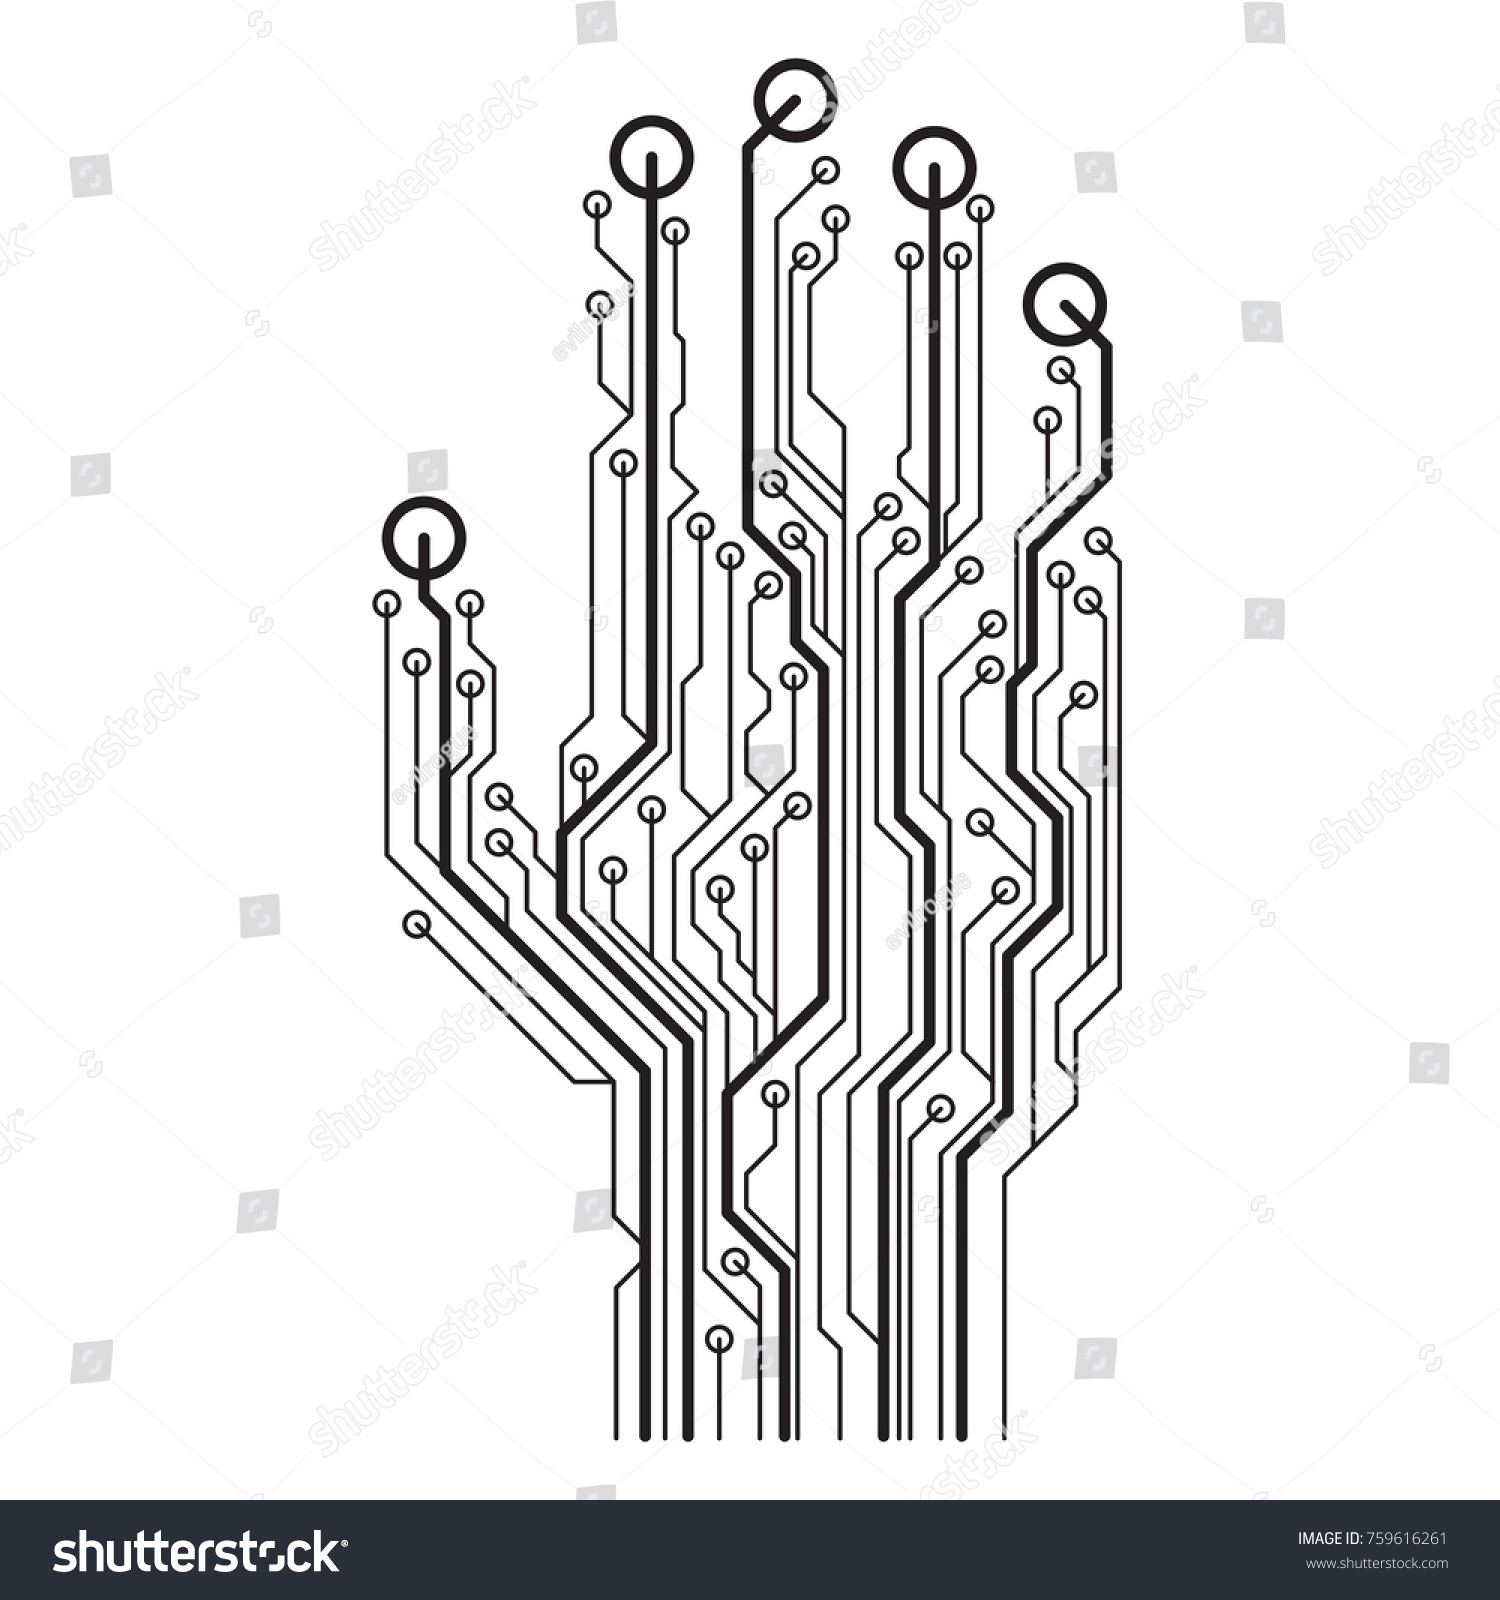 Hand Circuit Board Vector Illustration Isolated Stock Vector ...